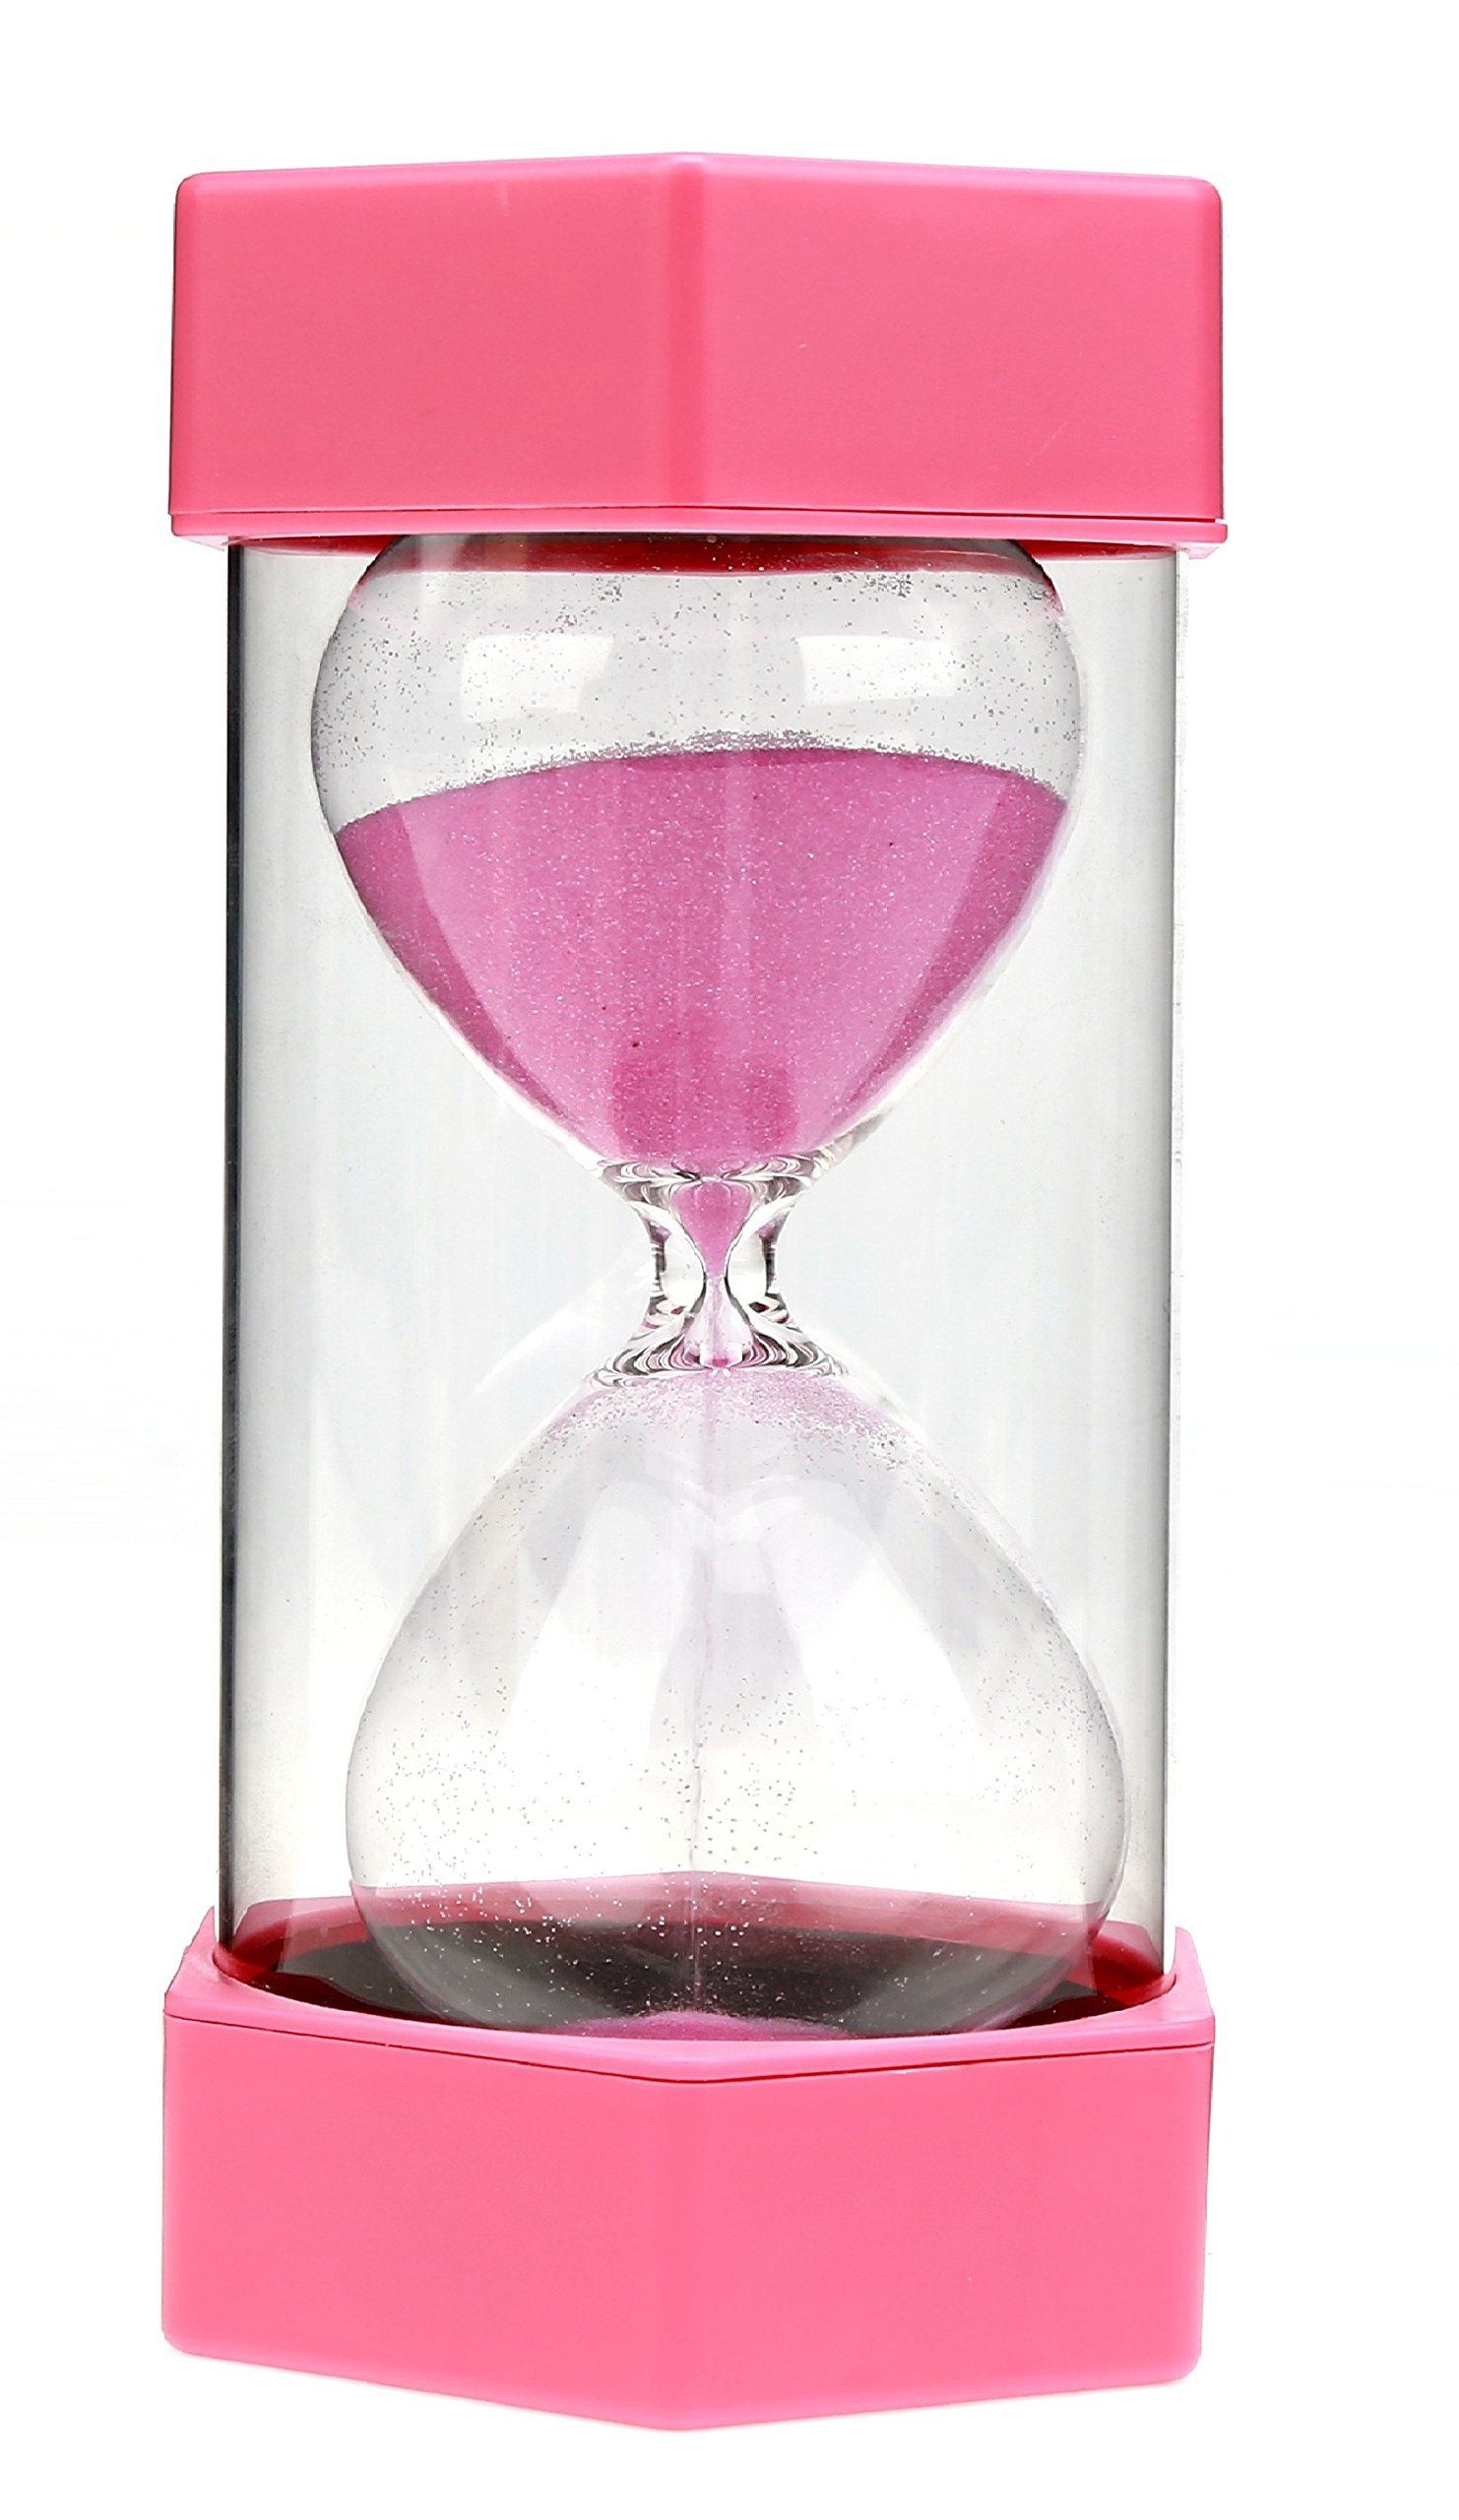 VEOLEY 10 Minute Sand Timer Security Fashion Hourglass for Kids, Classroom, Game,Kitchen,lunch-Pink by VEOLEY (Image #1)